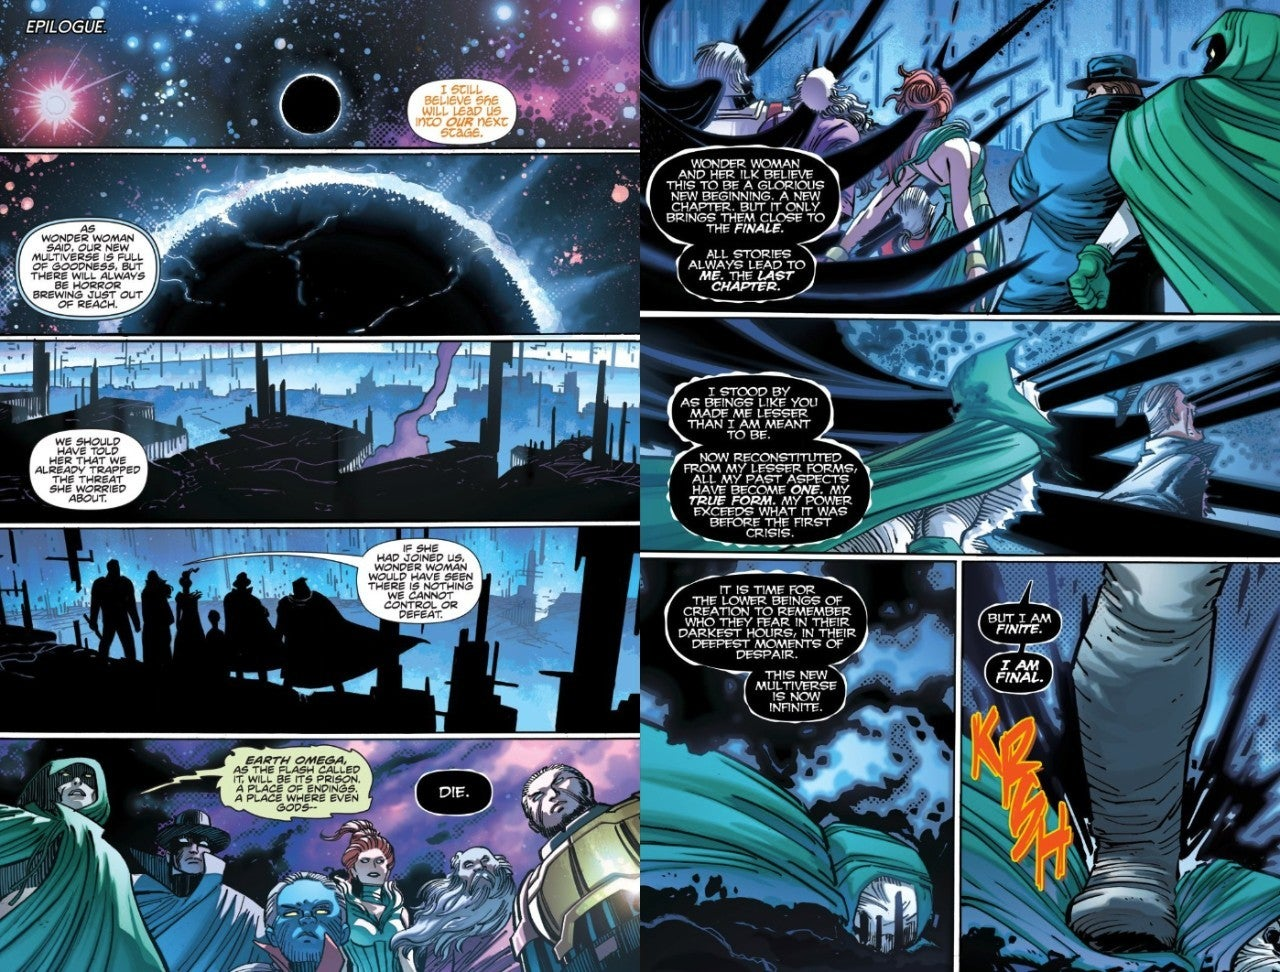 DC Infinite Frontier Spoilers The Quintessence Death Killed Darkseid